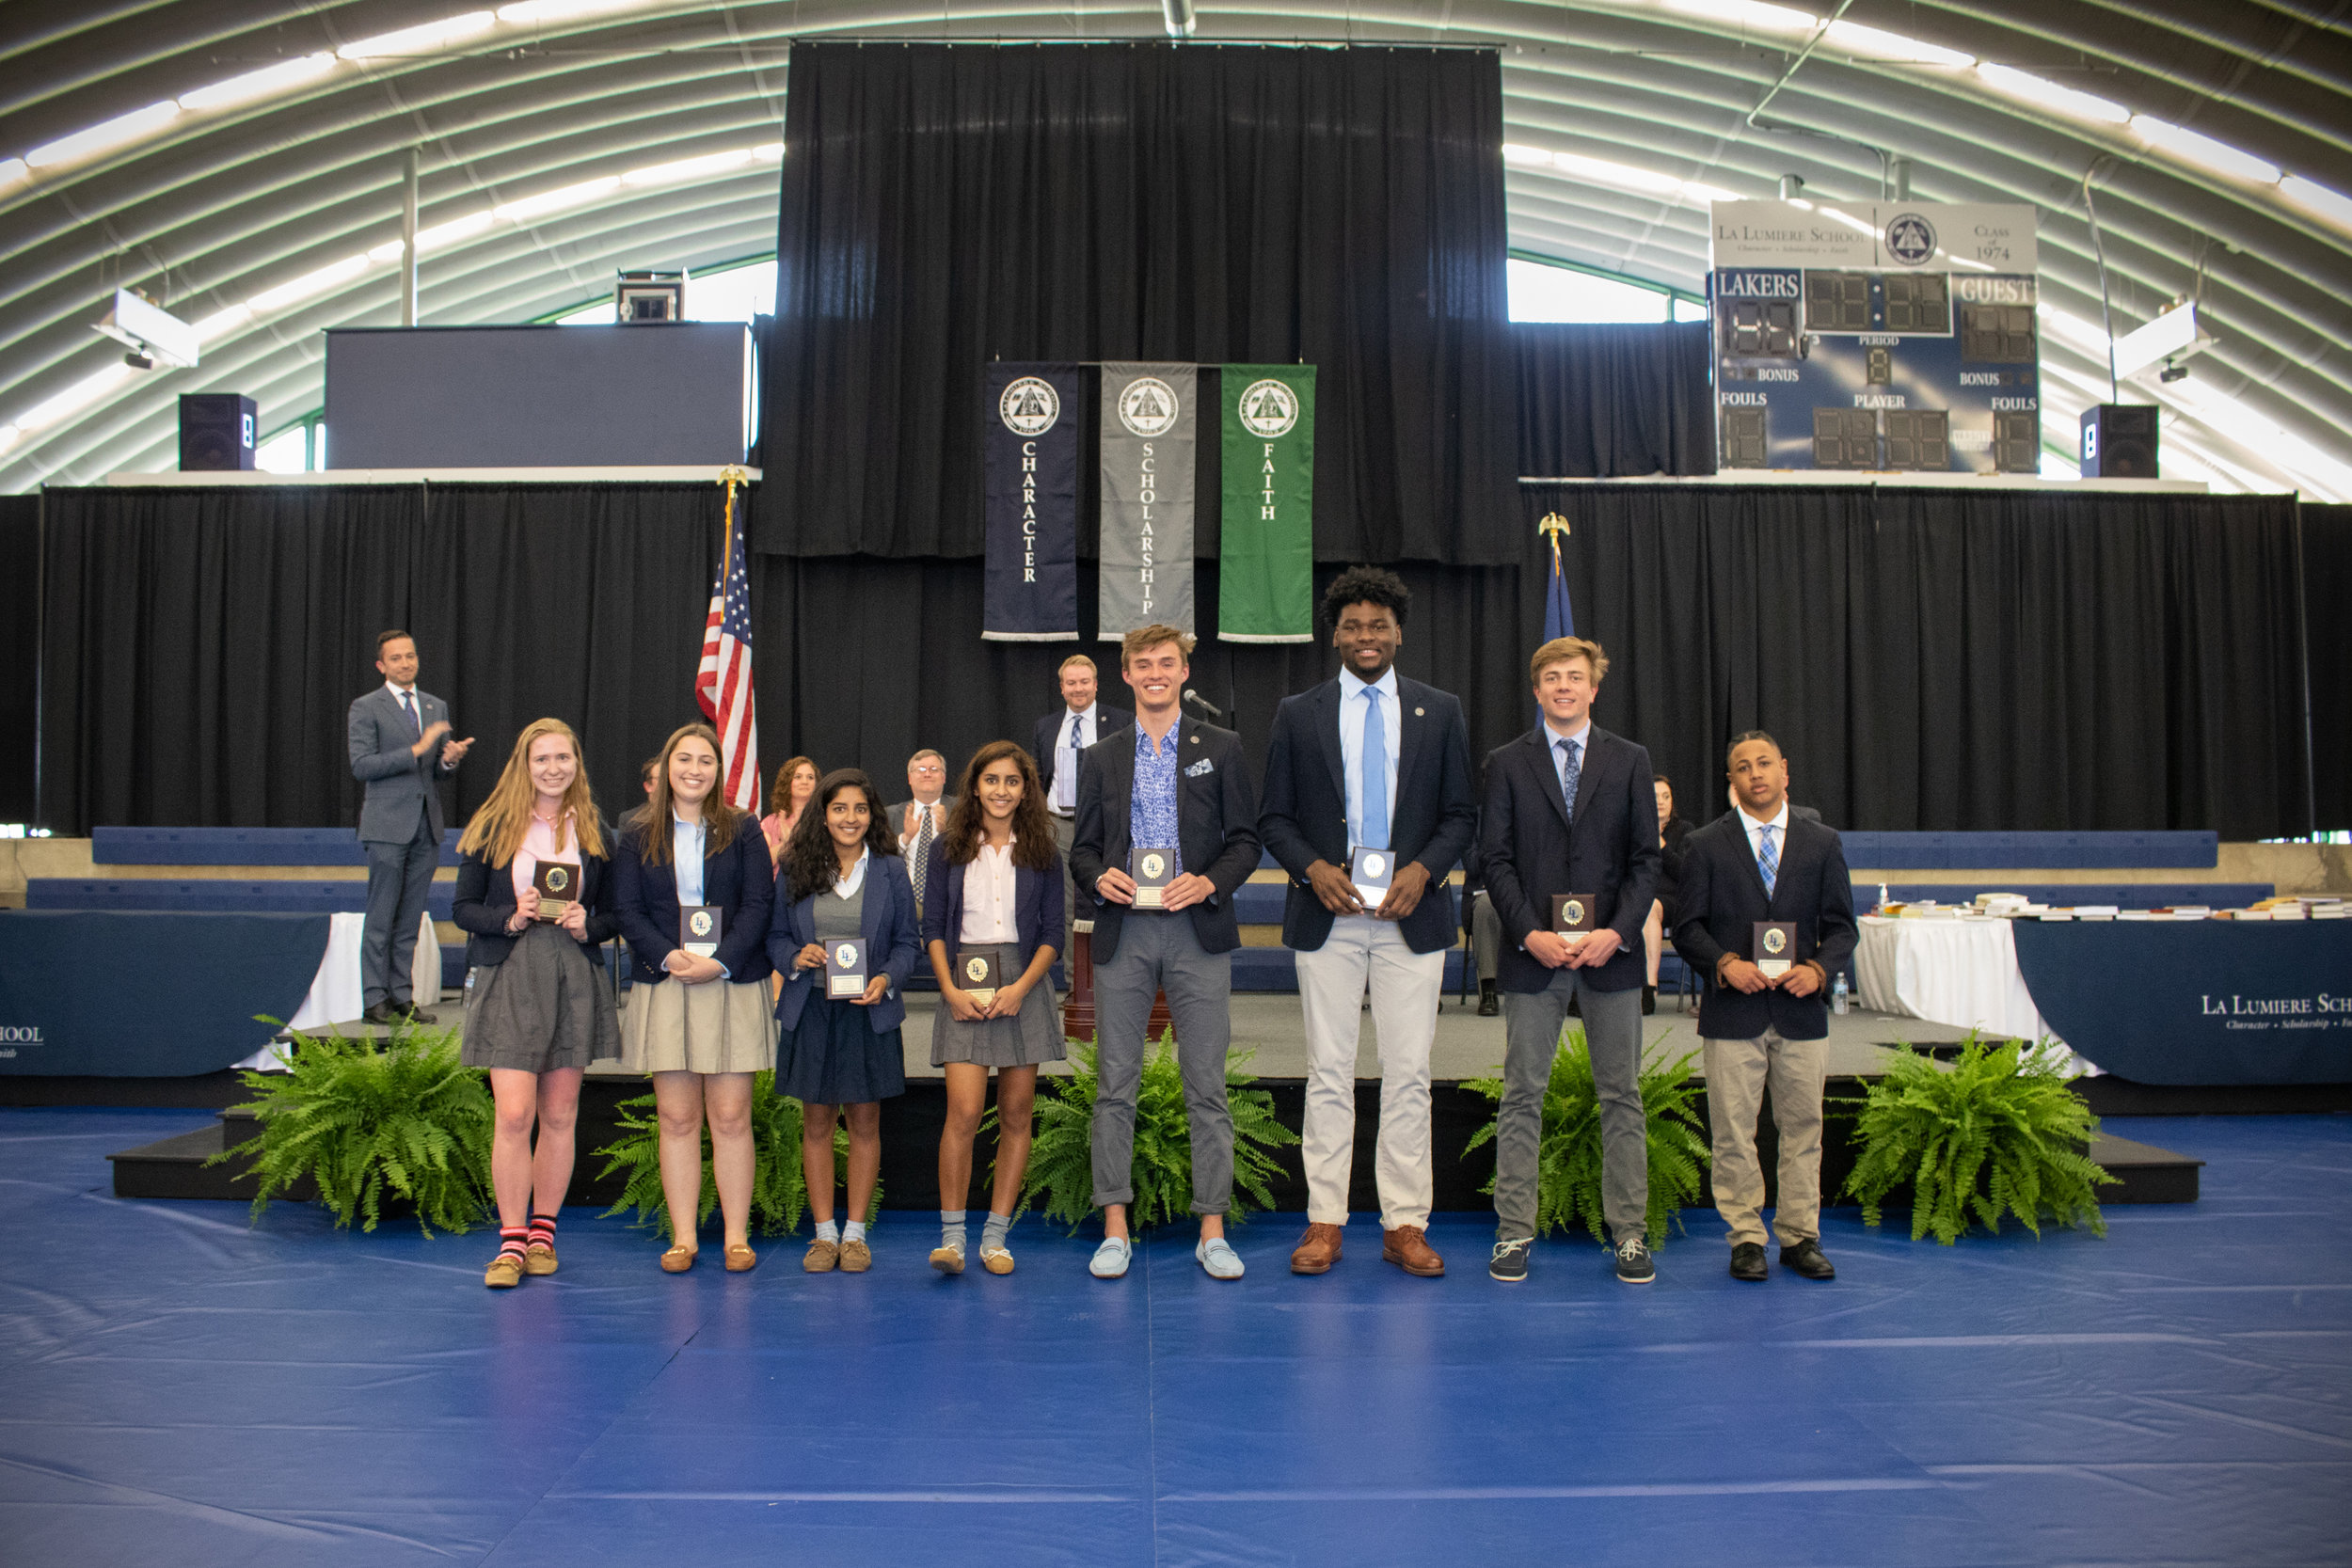 Excellence in Performance and Laker Award winners for the winter season in athletics